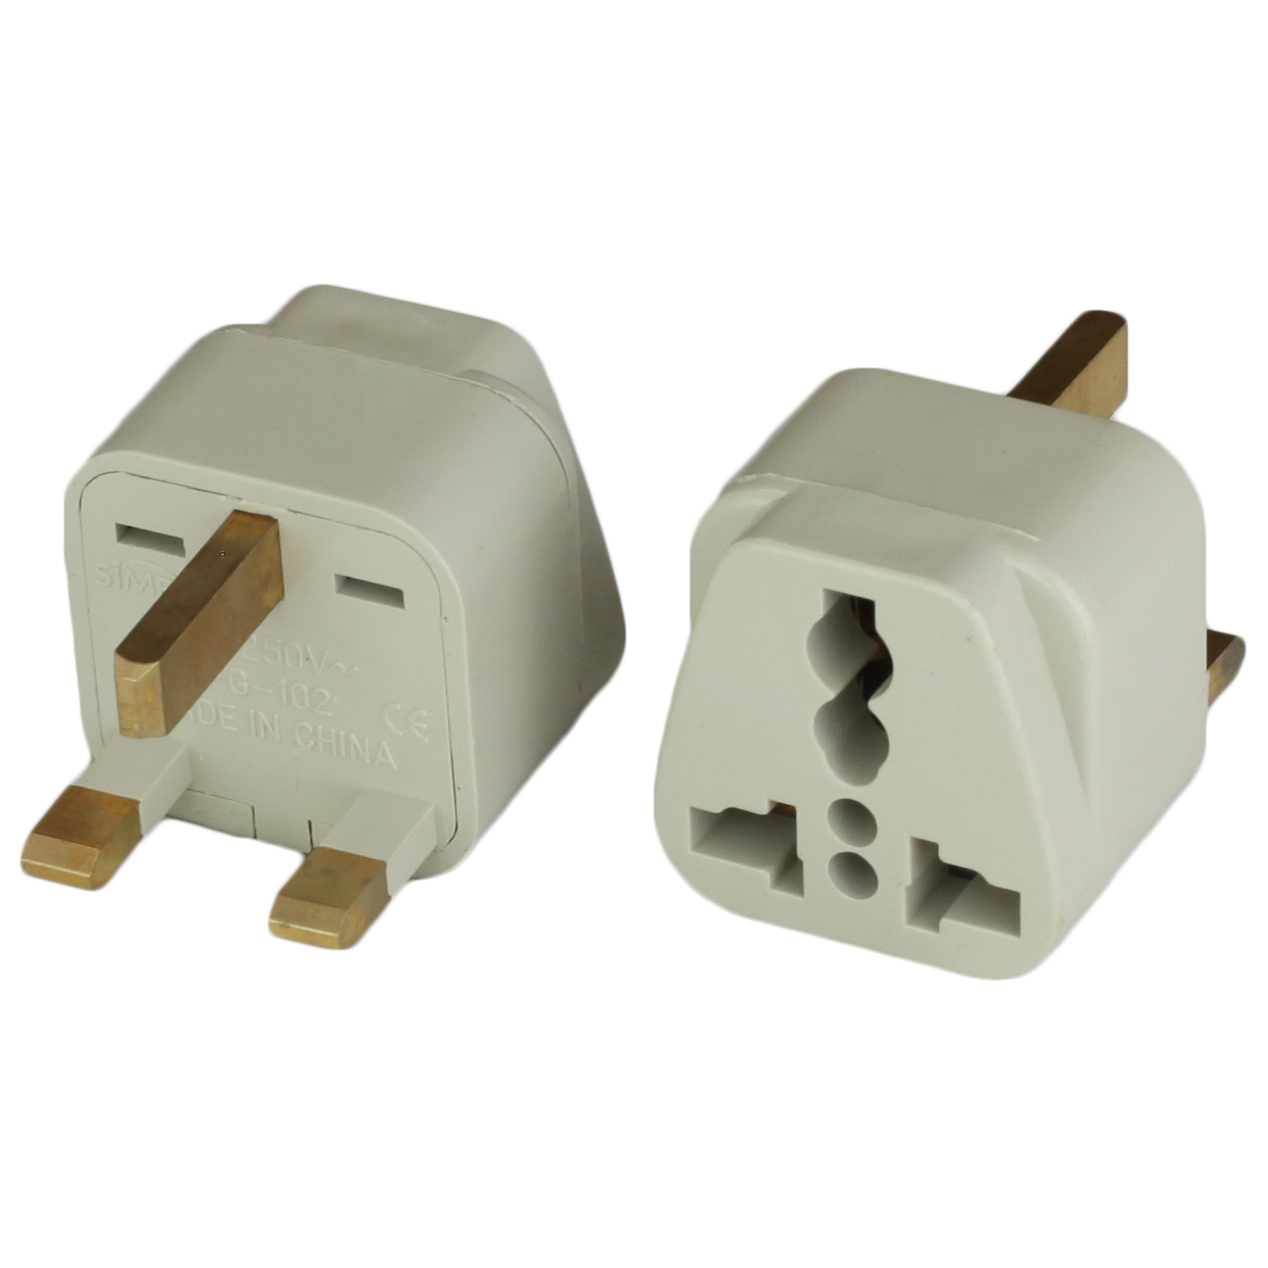 Photo of Adapter UK BS1363 Plug to IEC60320 C13 10A 250V - BLACK